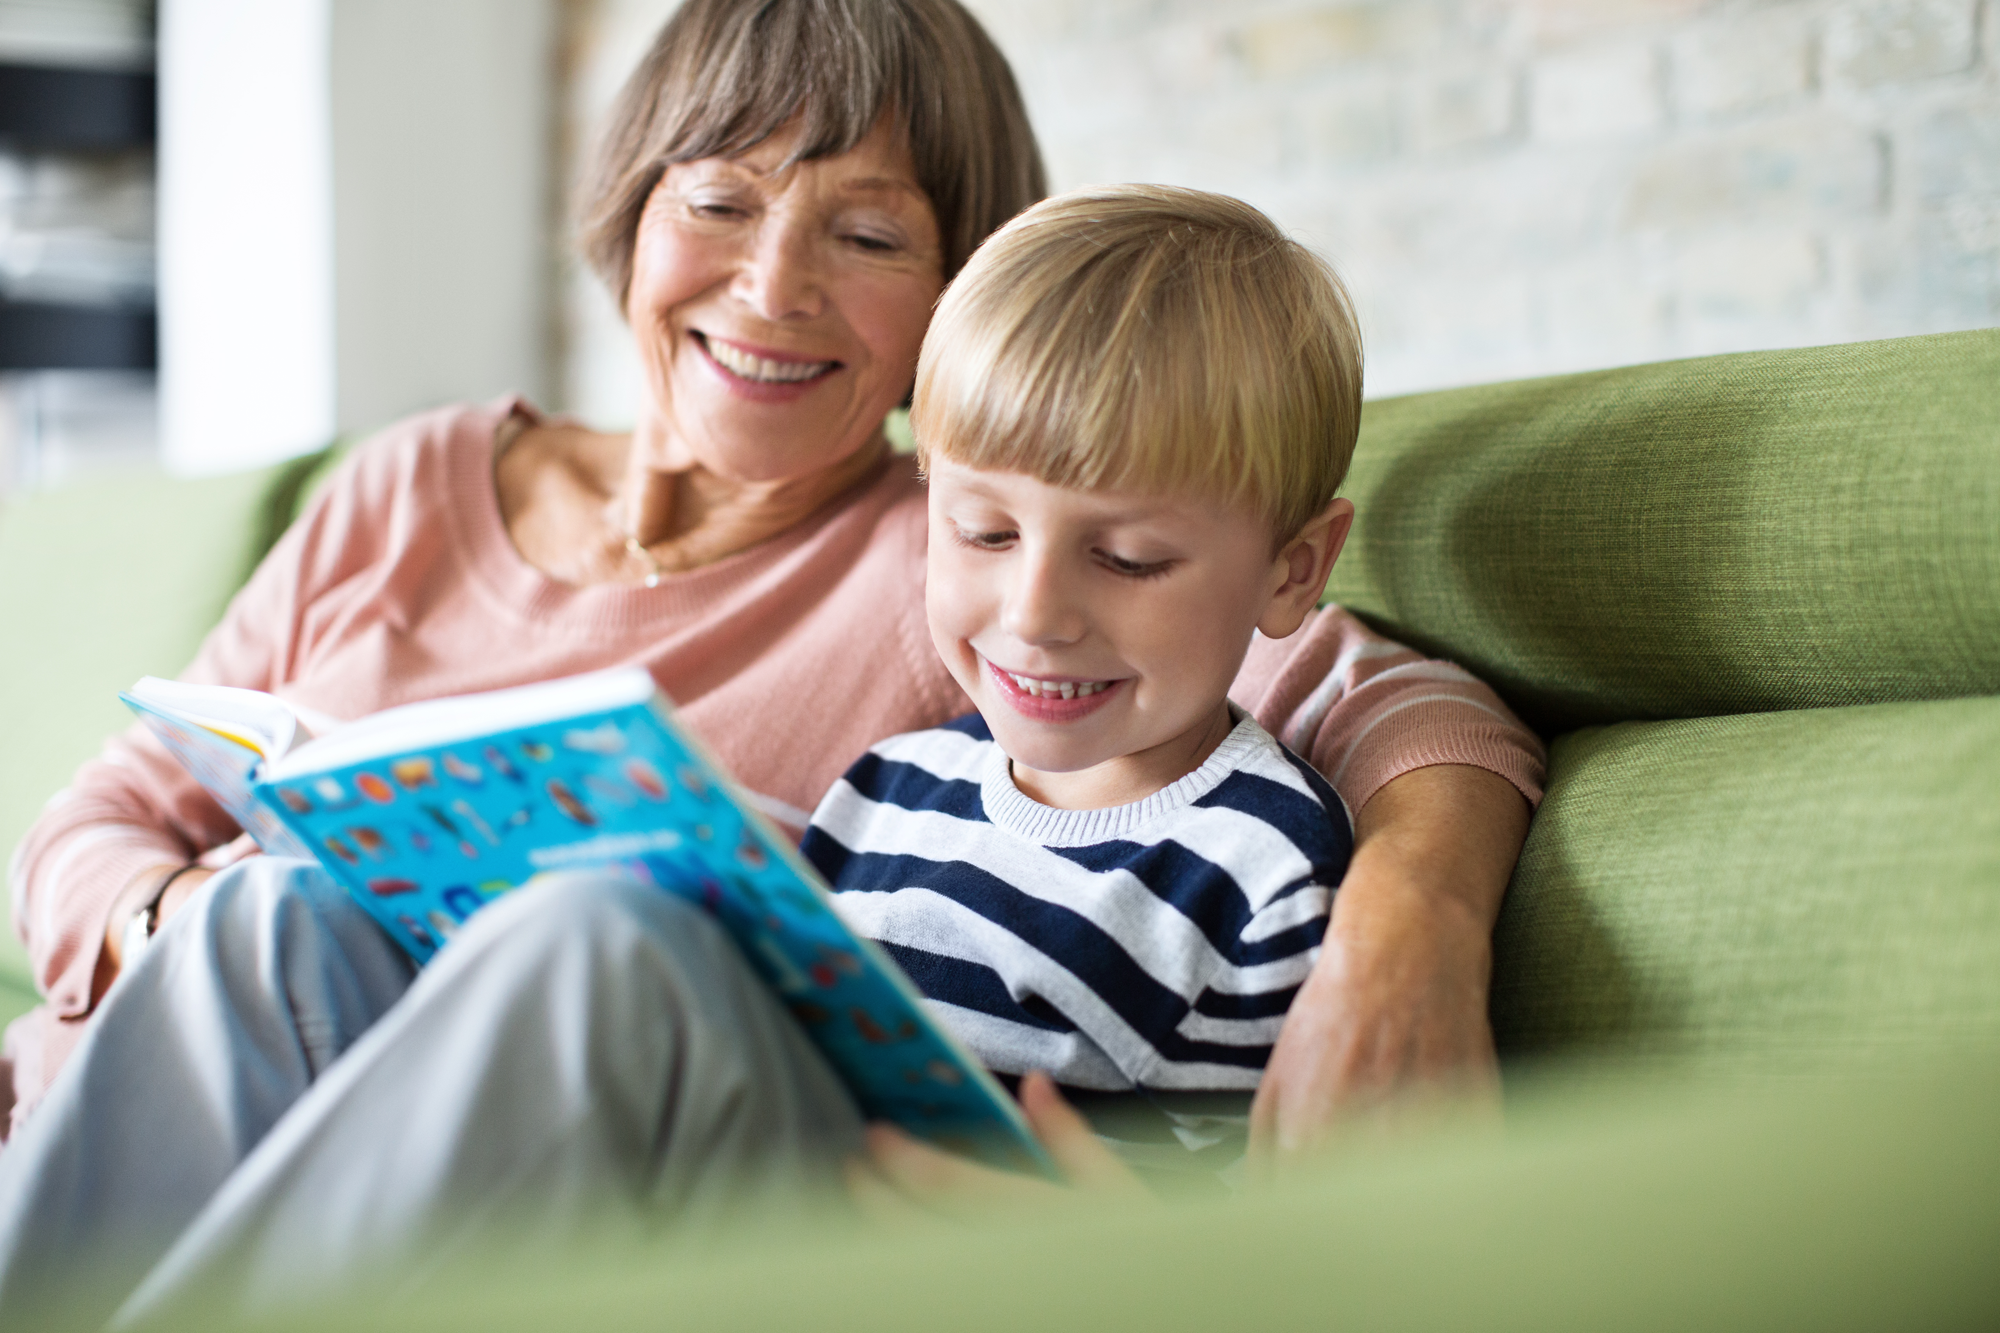 A grandma and grandson reading a book together